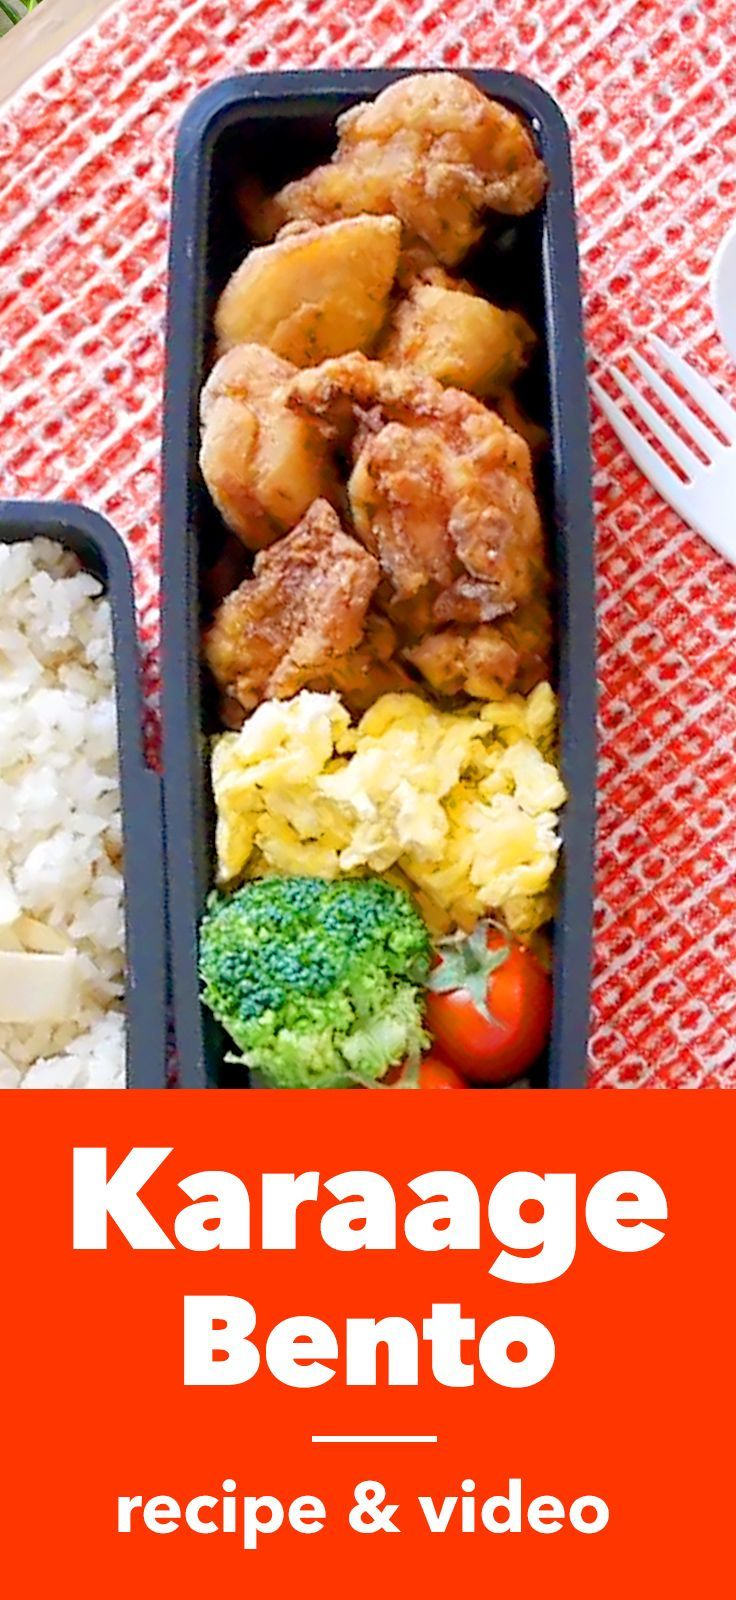 Karaage Bento! Visit our site for 100 quick and easy traditional Japanese bento lunch box recipes and ideas for adults. Pin now for later!